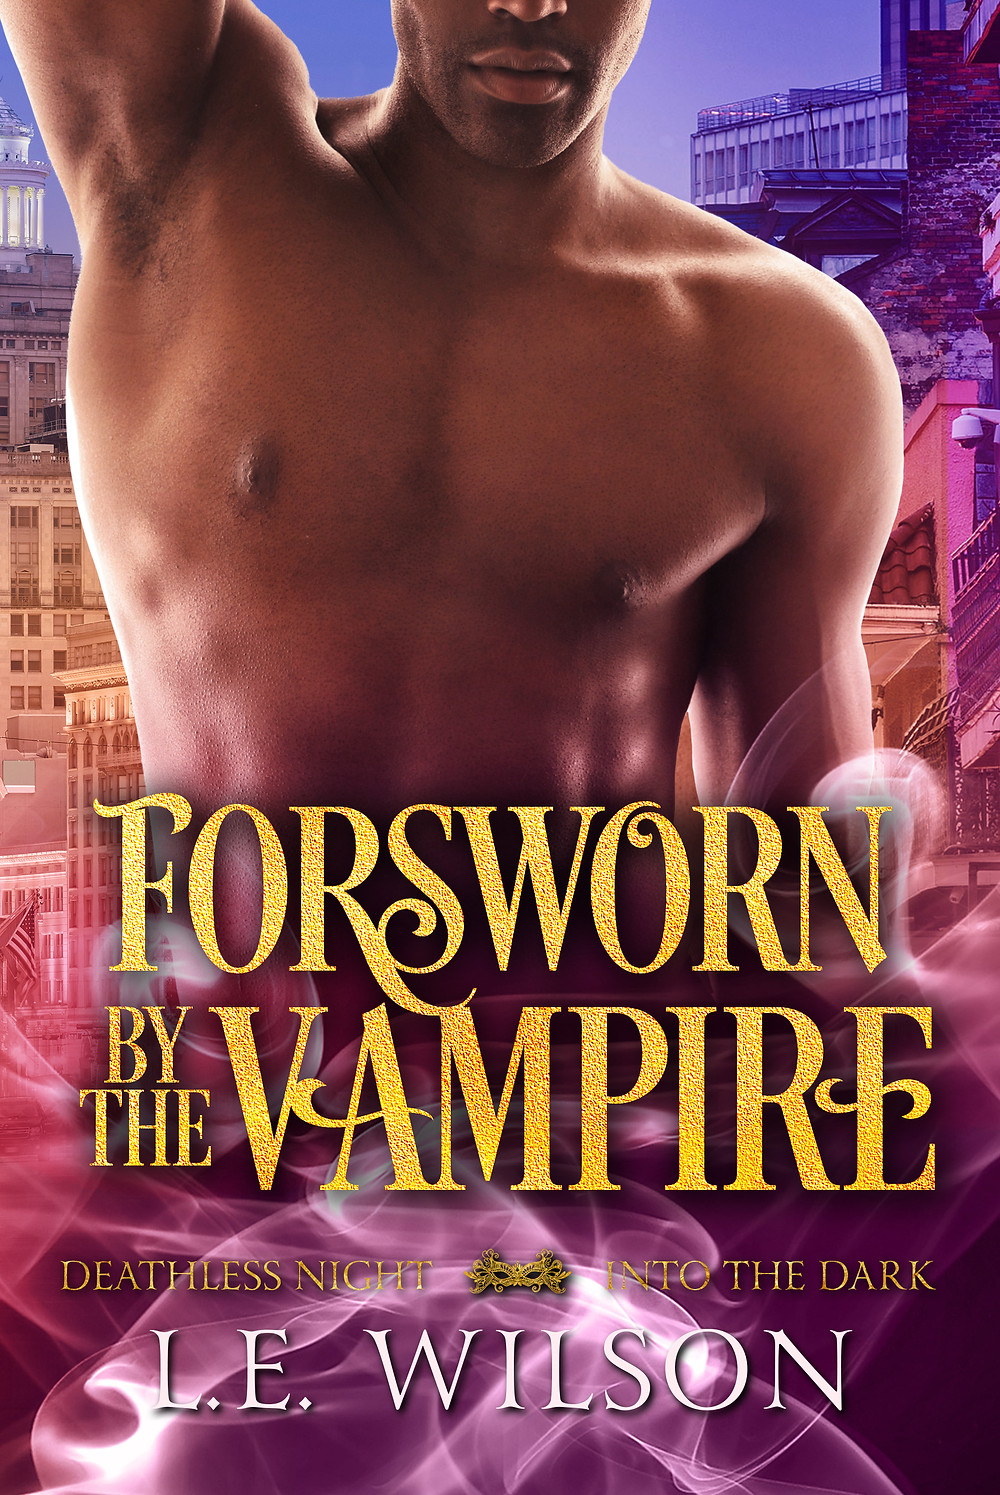 Image of the bookcover for Forsworn By The Vampire